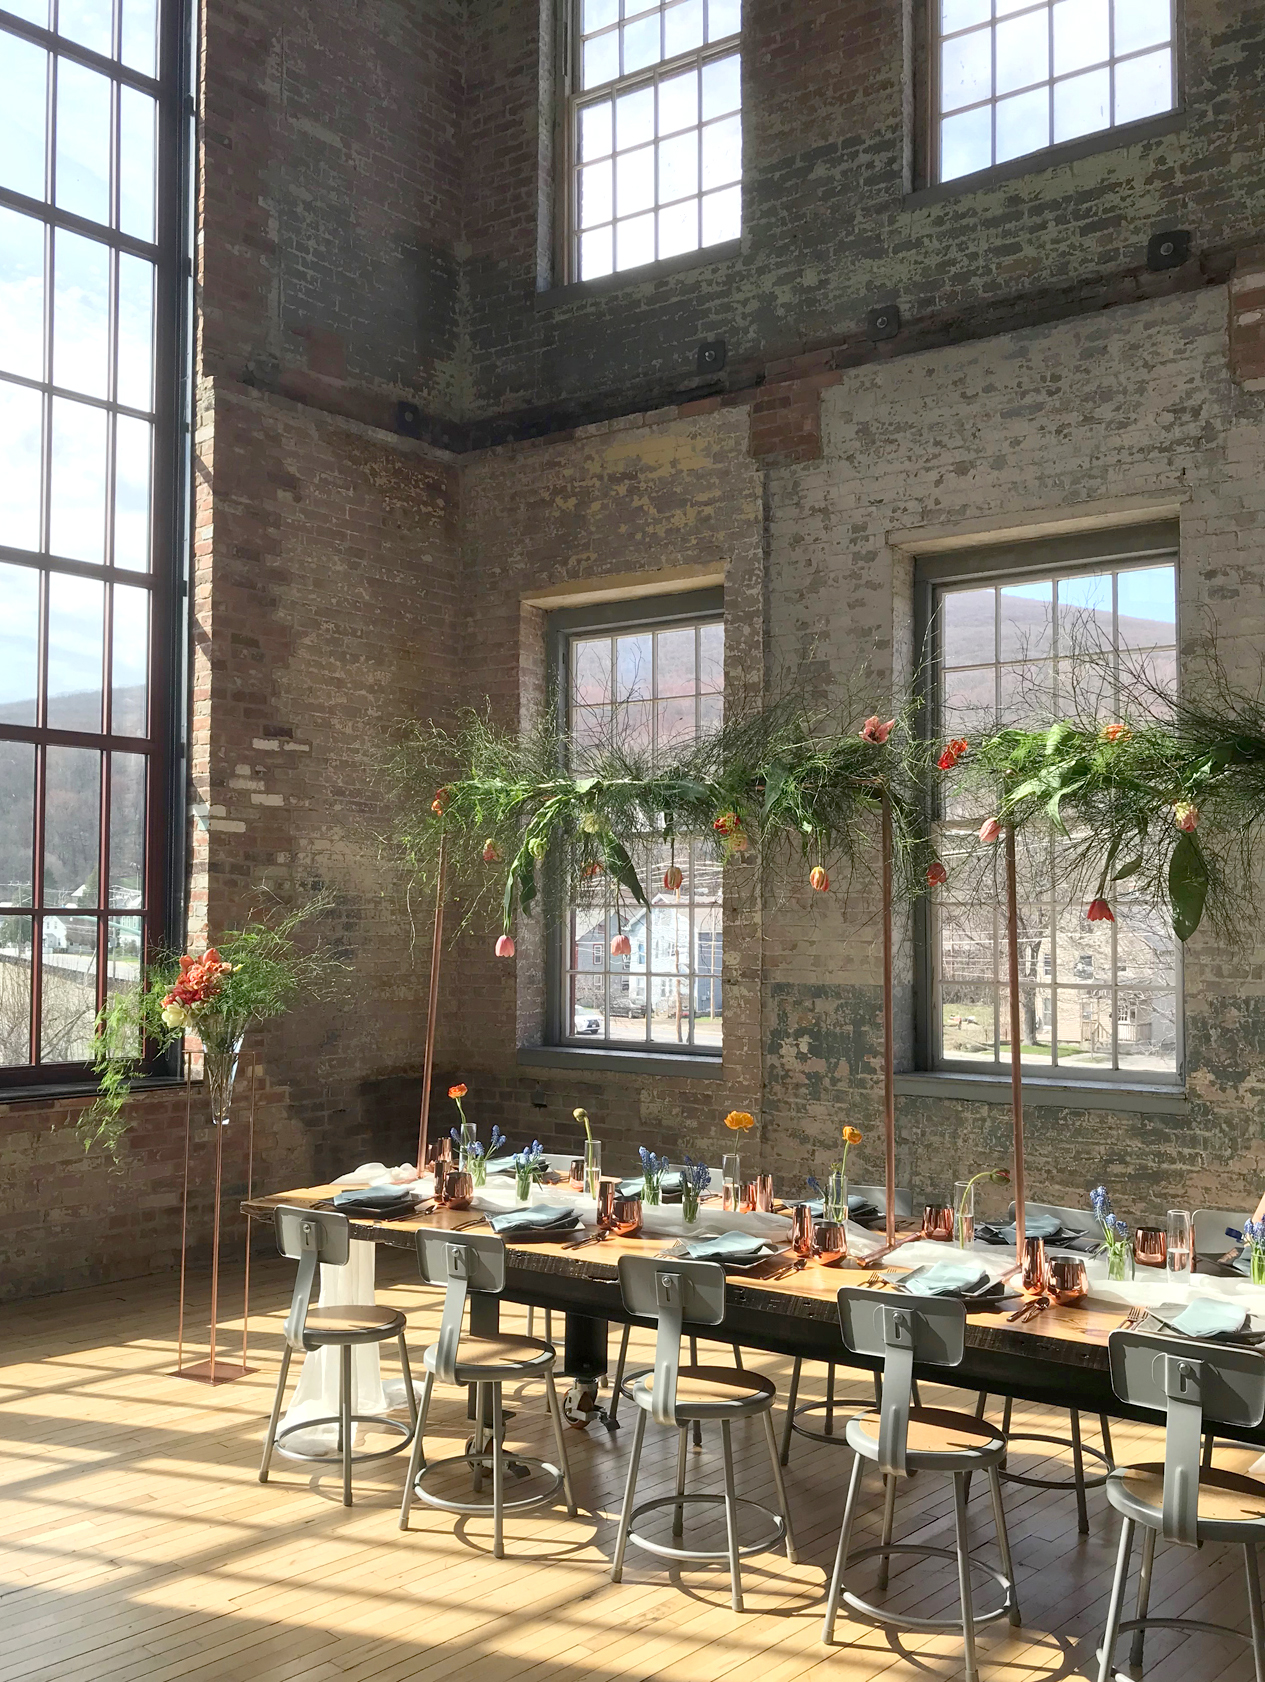 mass-moca-industrial-chic-wedding-berkshire-bride-hybl-fannin-design.jpg